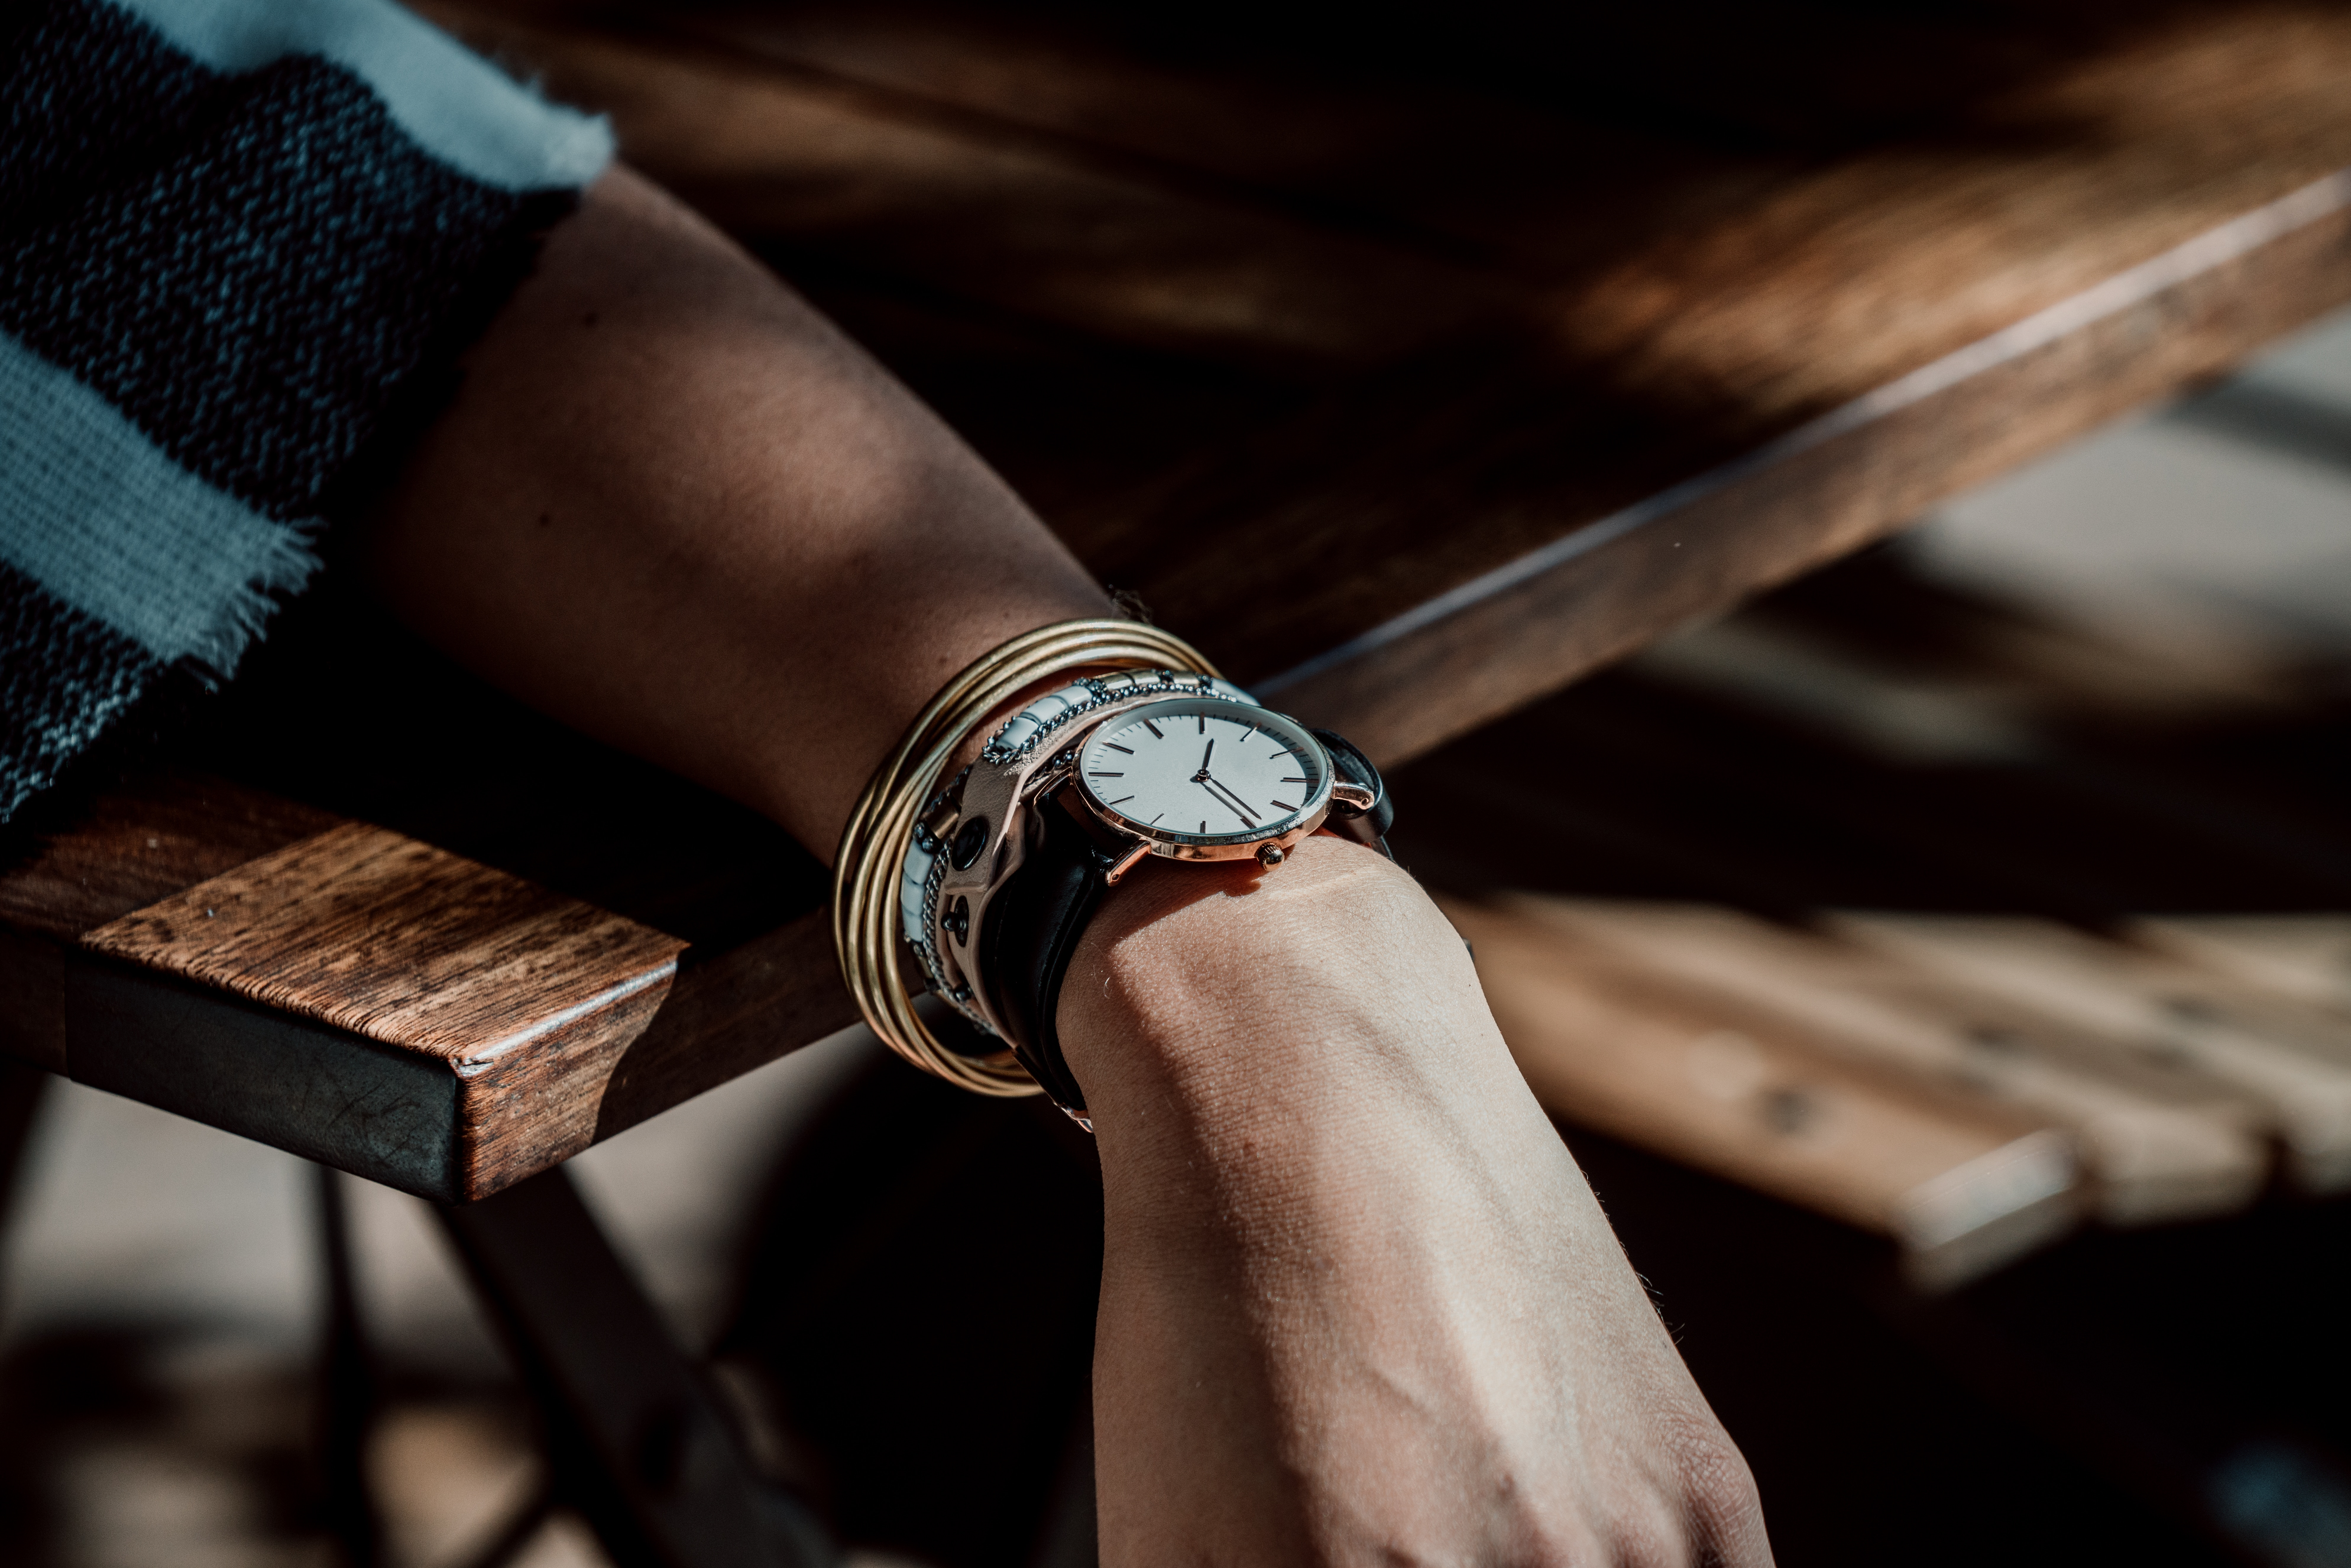 142023 Screensavers and Wallpapers Wrist Watch for phone. Download Hand, Miscellanea, Miscellaneous, Wrist Watch, Wristwatch, Bracelets pictures for free